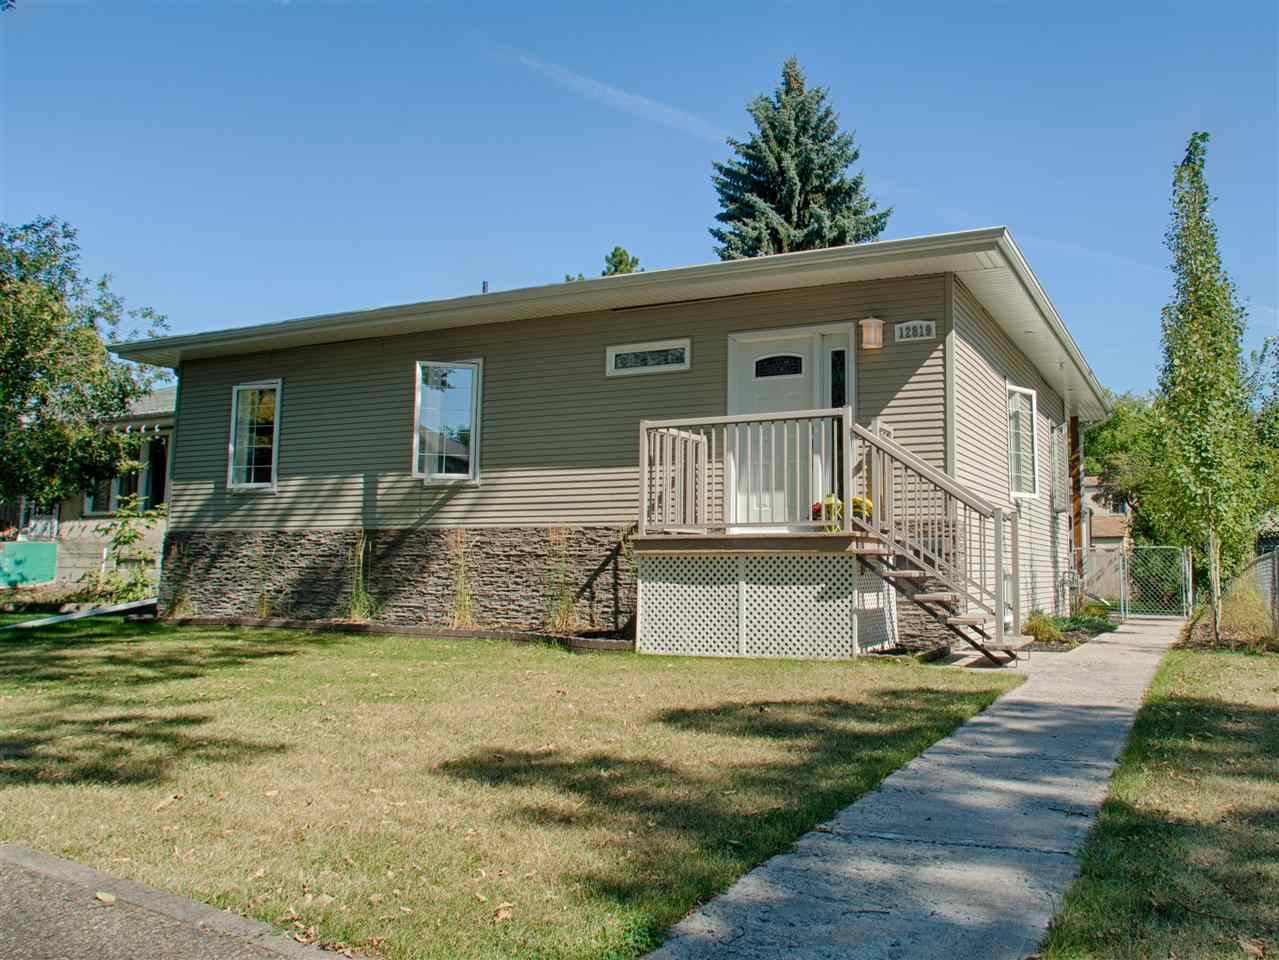 Main Photo: 12819 123 Street in Edmonton: Zone 01 House for sale : MLS® # E4079980